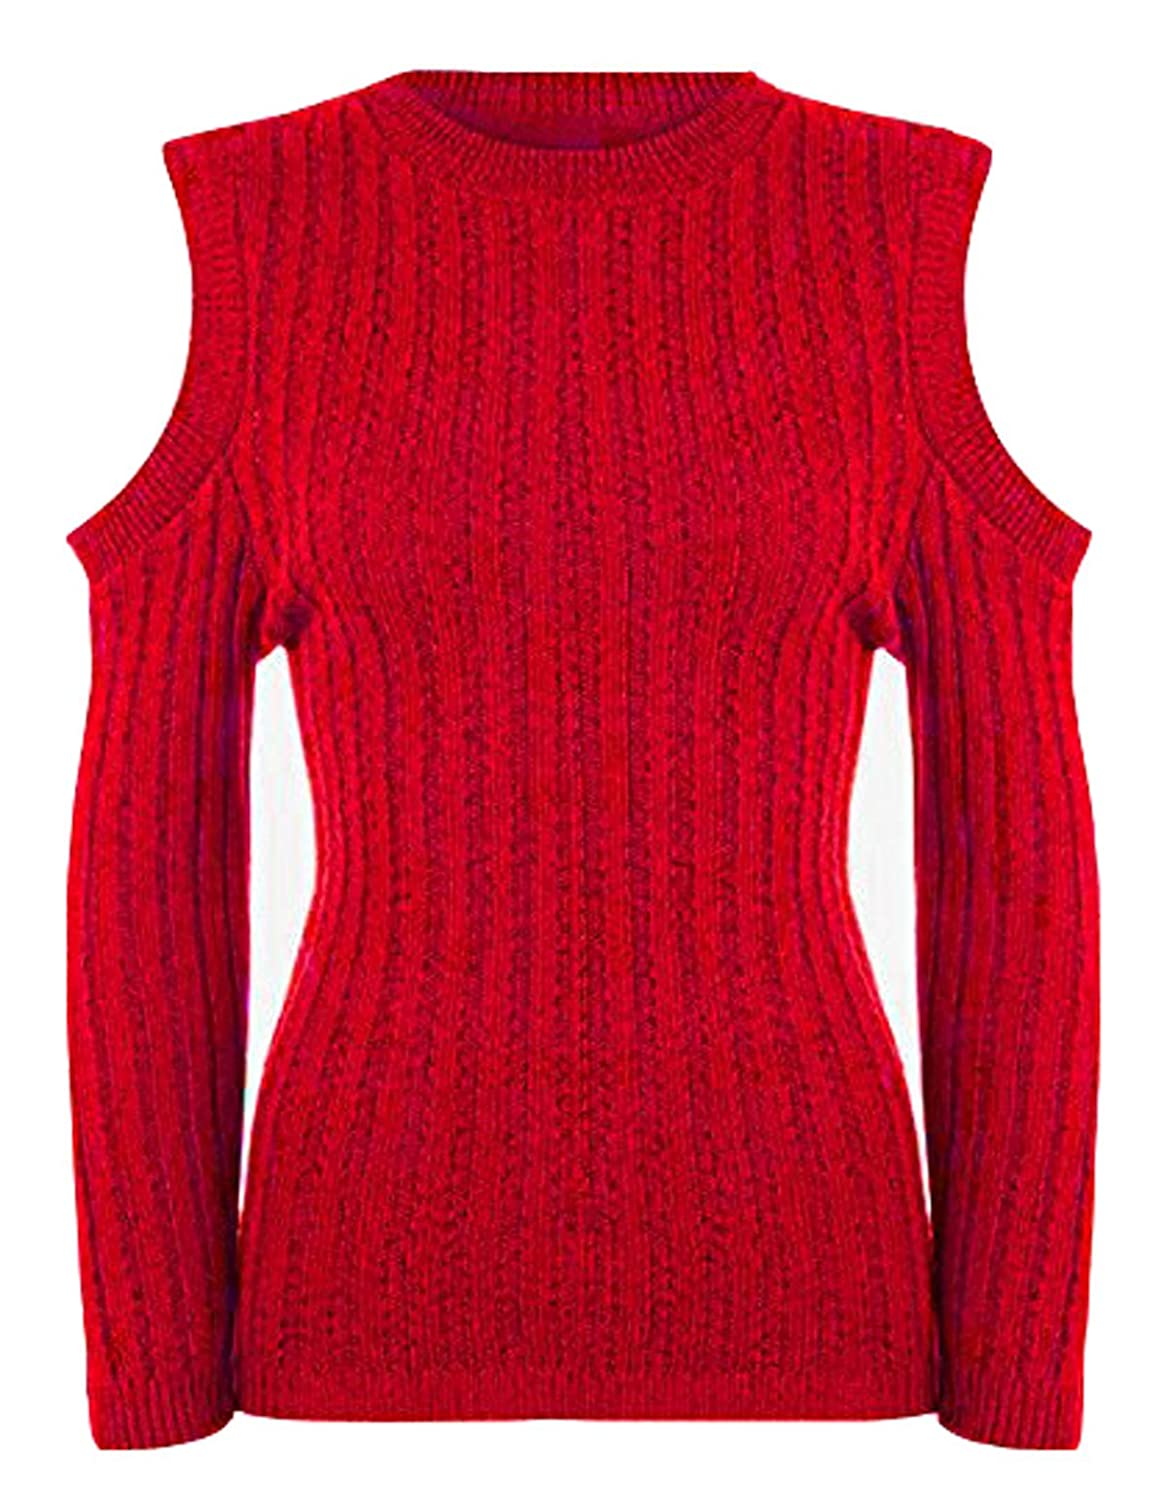 GUBA Big Girls' Cut Out Cold Shoulder Long Sleeve High Neck Rib Knitted Jumper